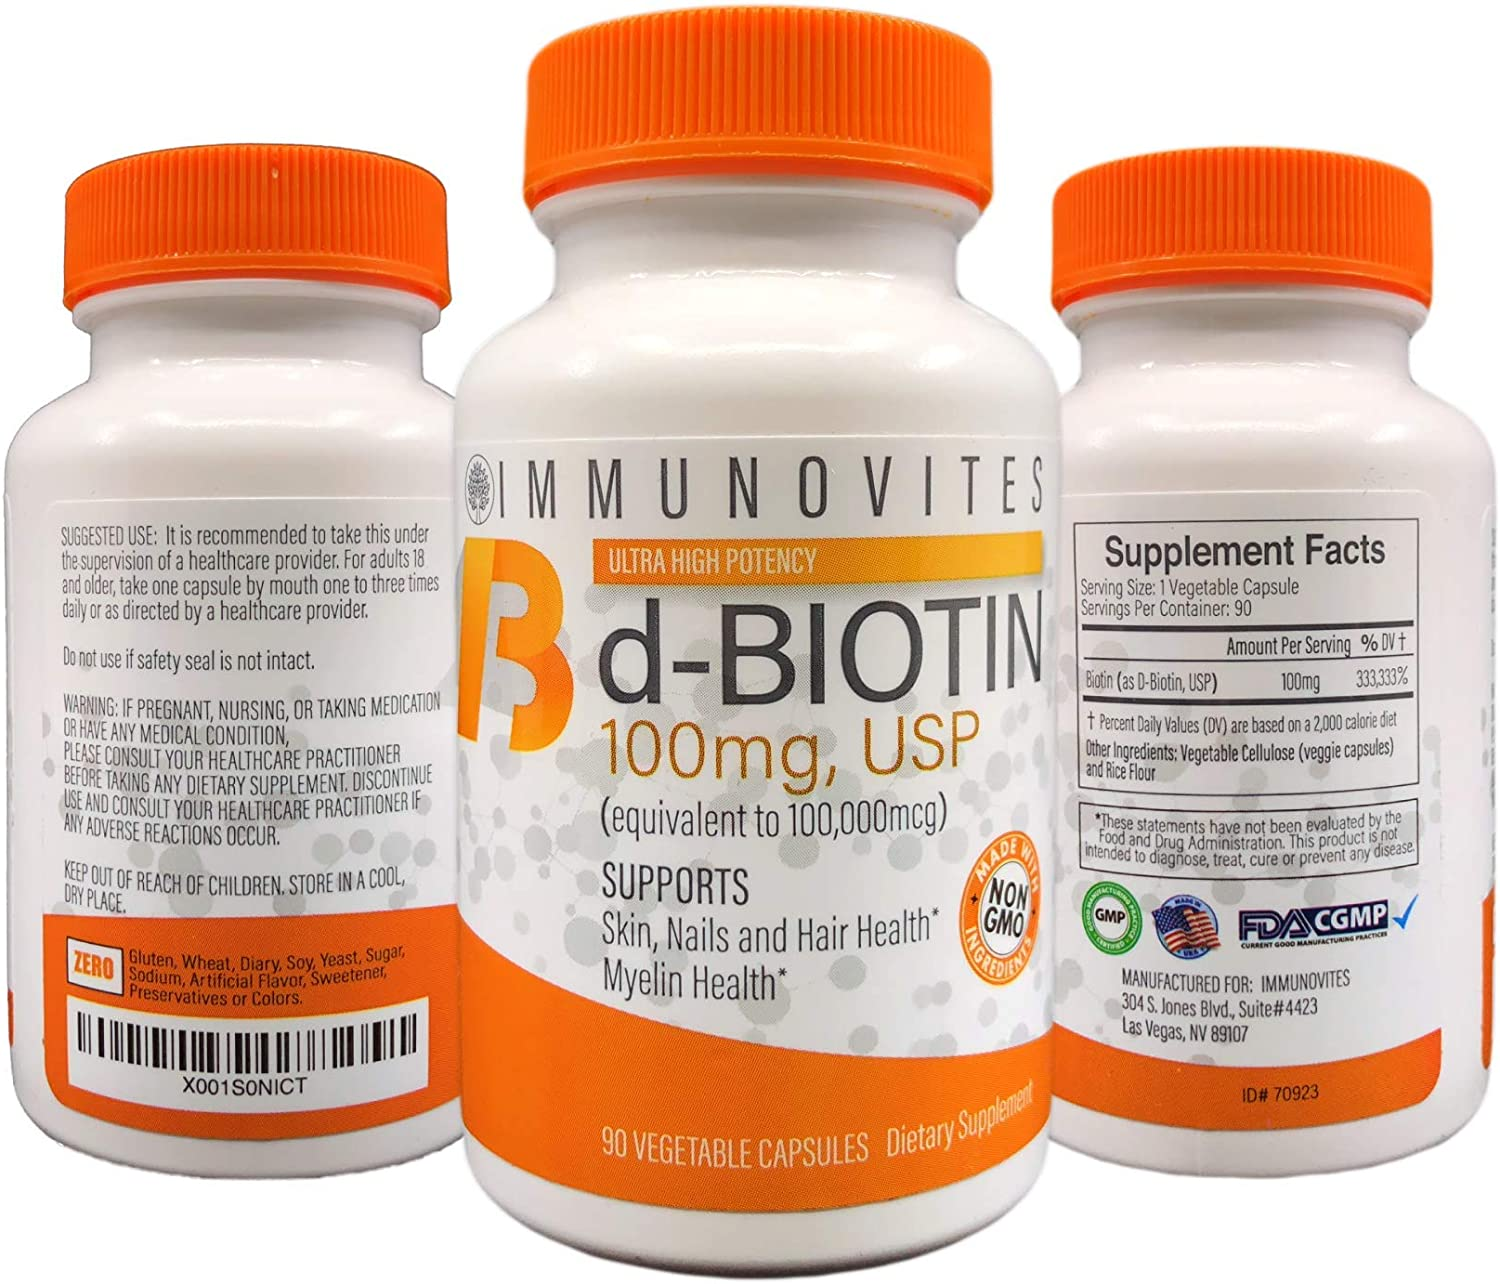 3-Pack High Dose Biotin as d-Biotin, USP 100mg Equivalent to 100,000mcg 90 Capsules, High Potency 3